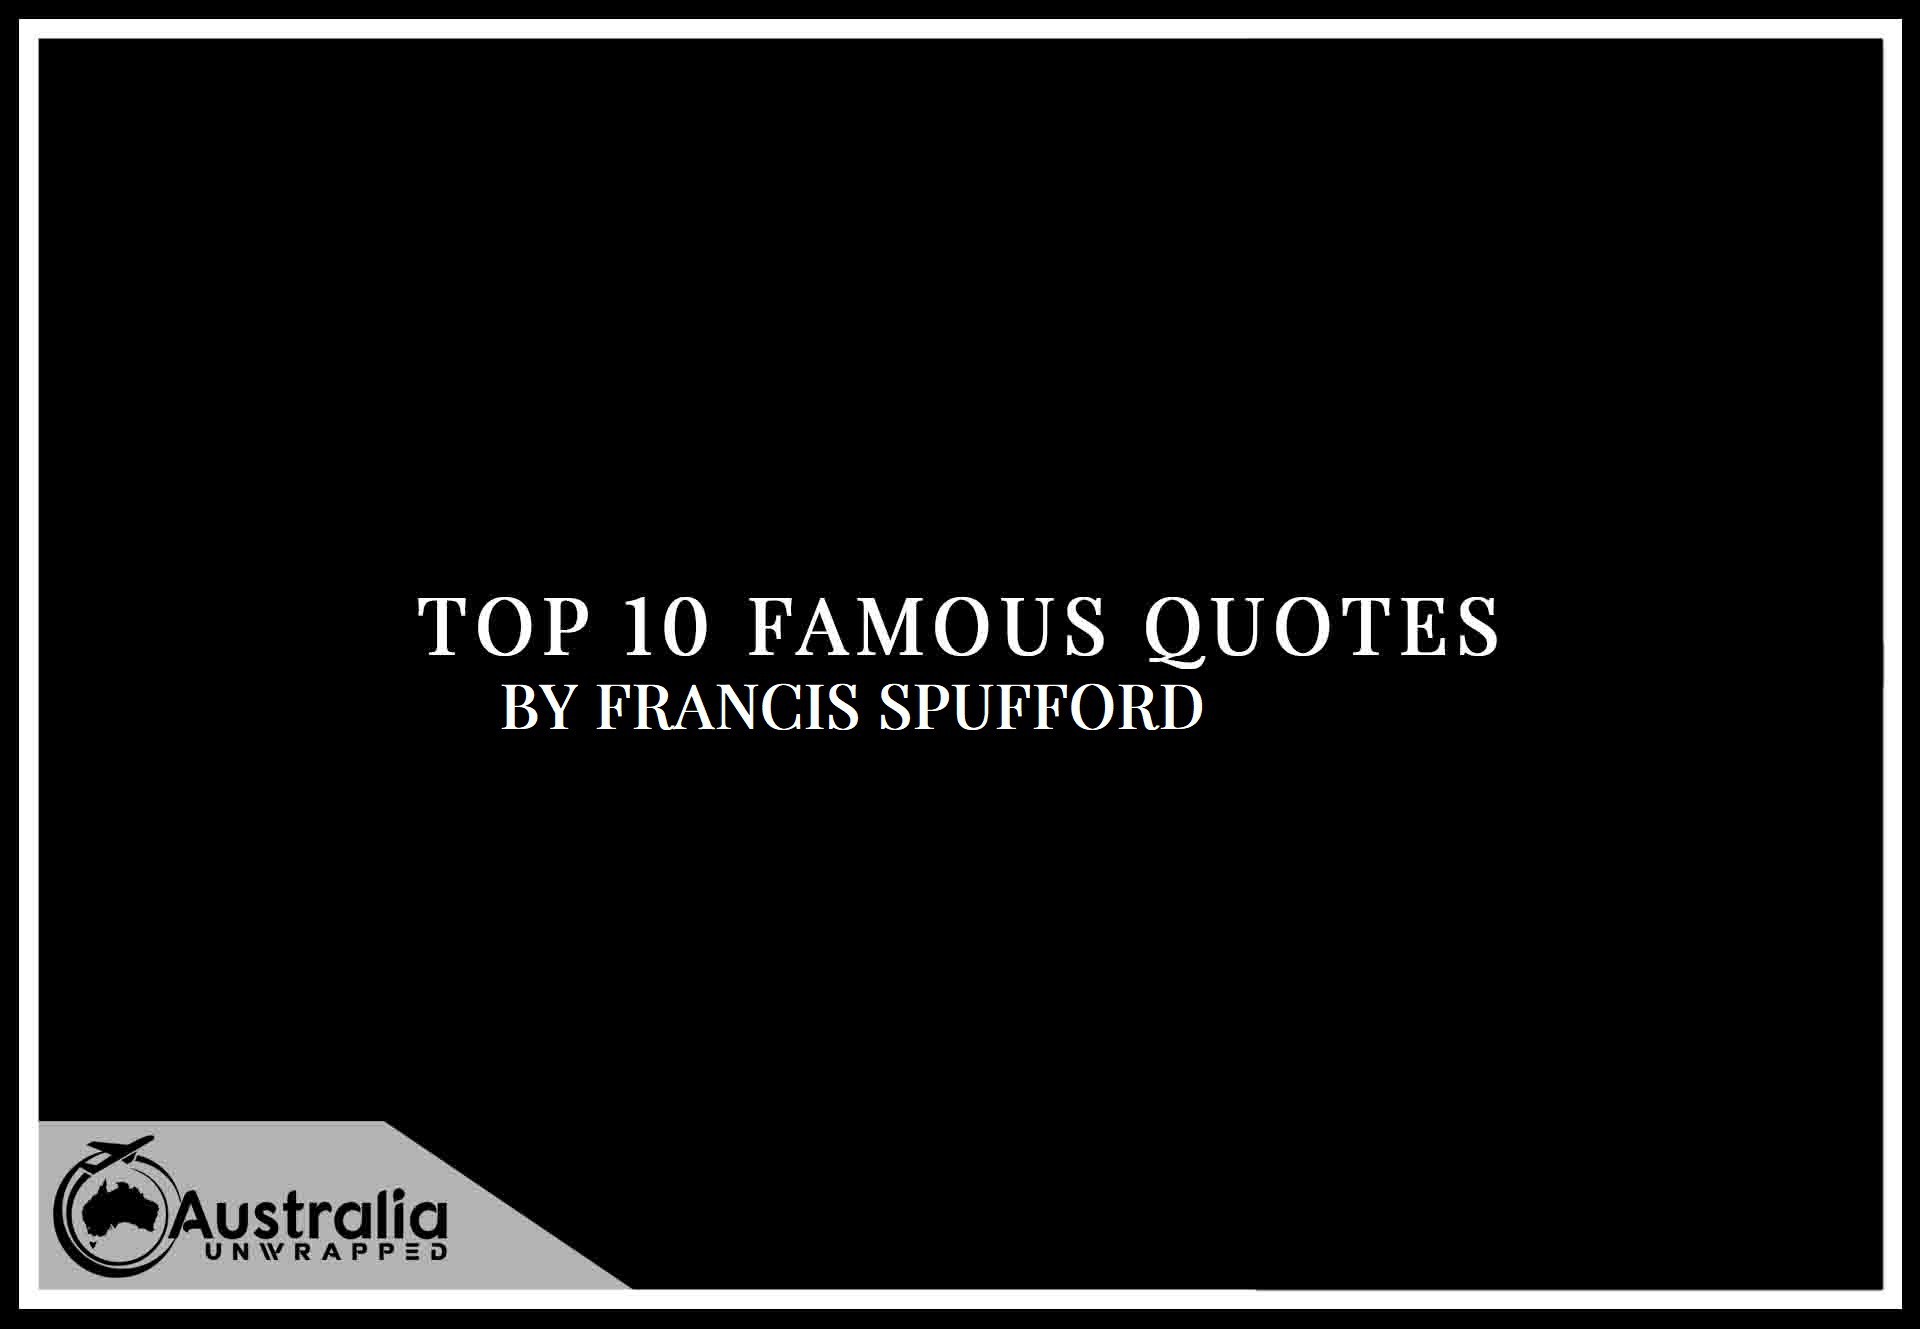 Top 10 Famous Quotes by Author Francis Spufford